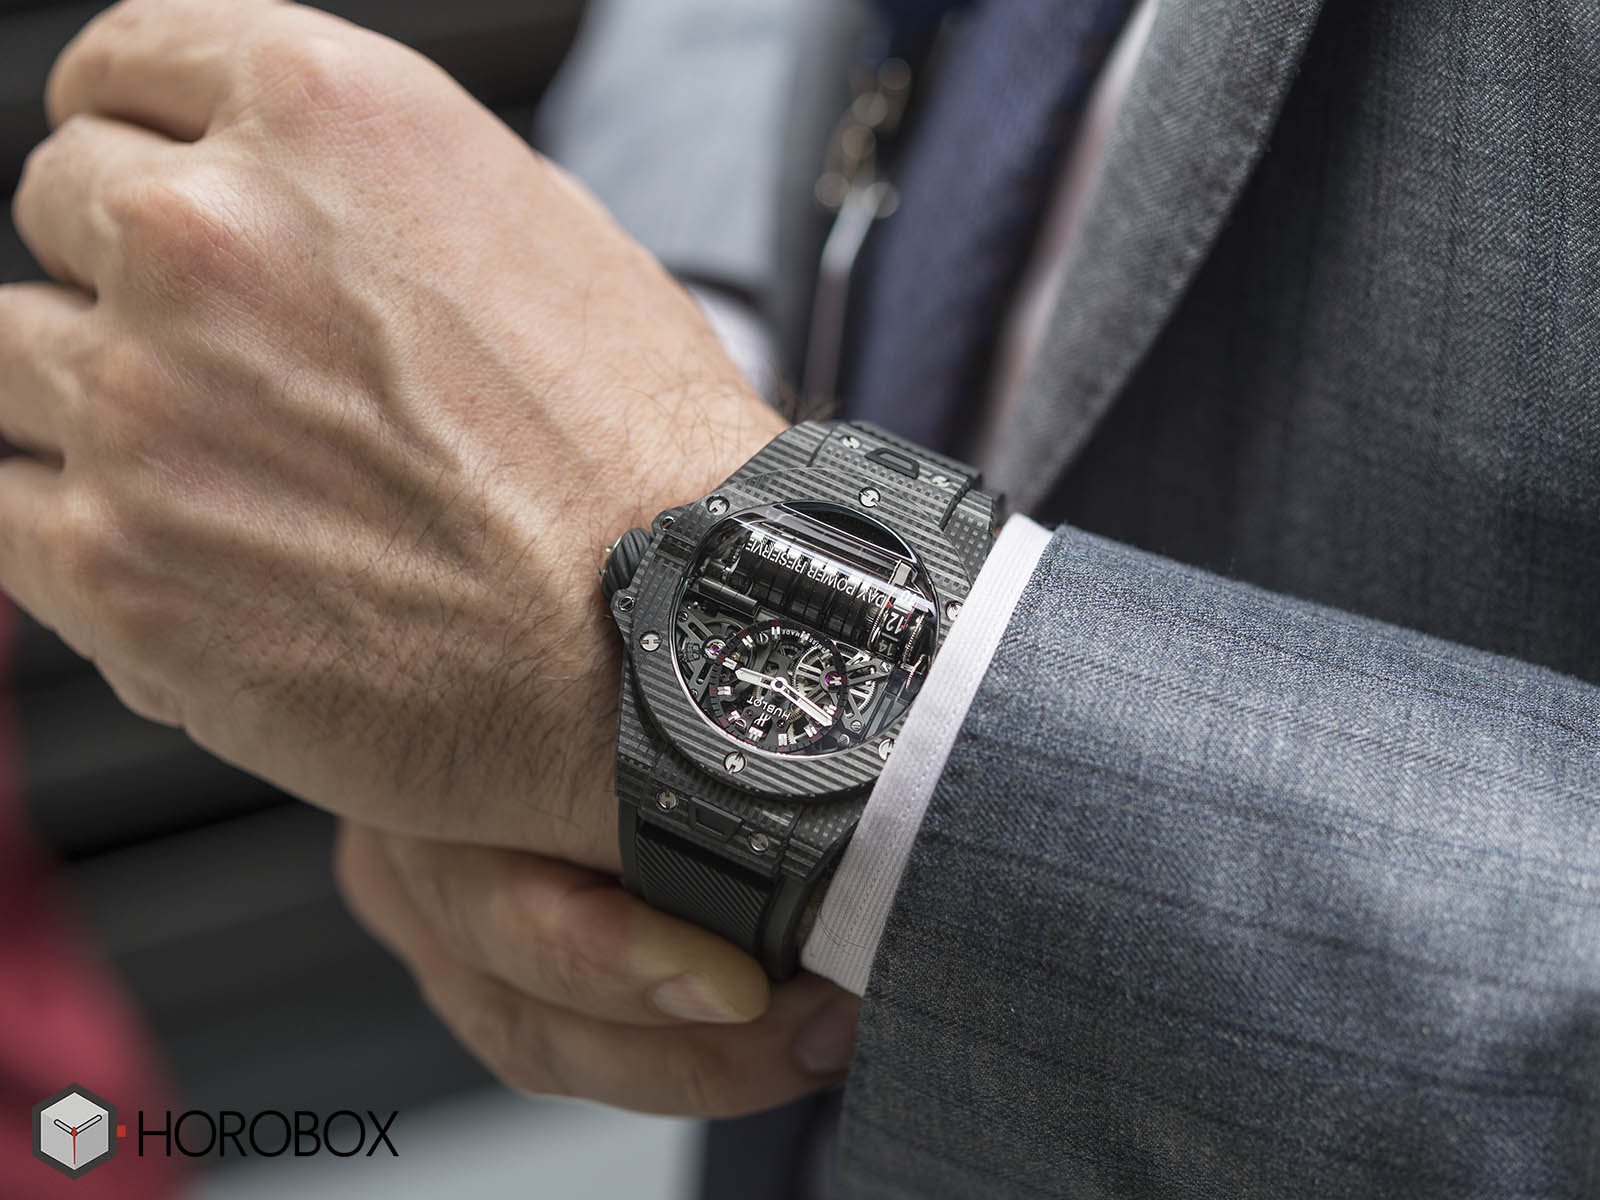 911-qd-0123-rx-hublot-mp-11-power-reserve-14-days-13.jpg